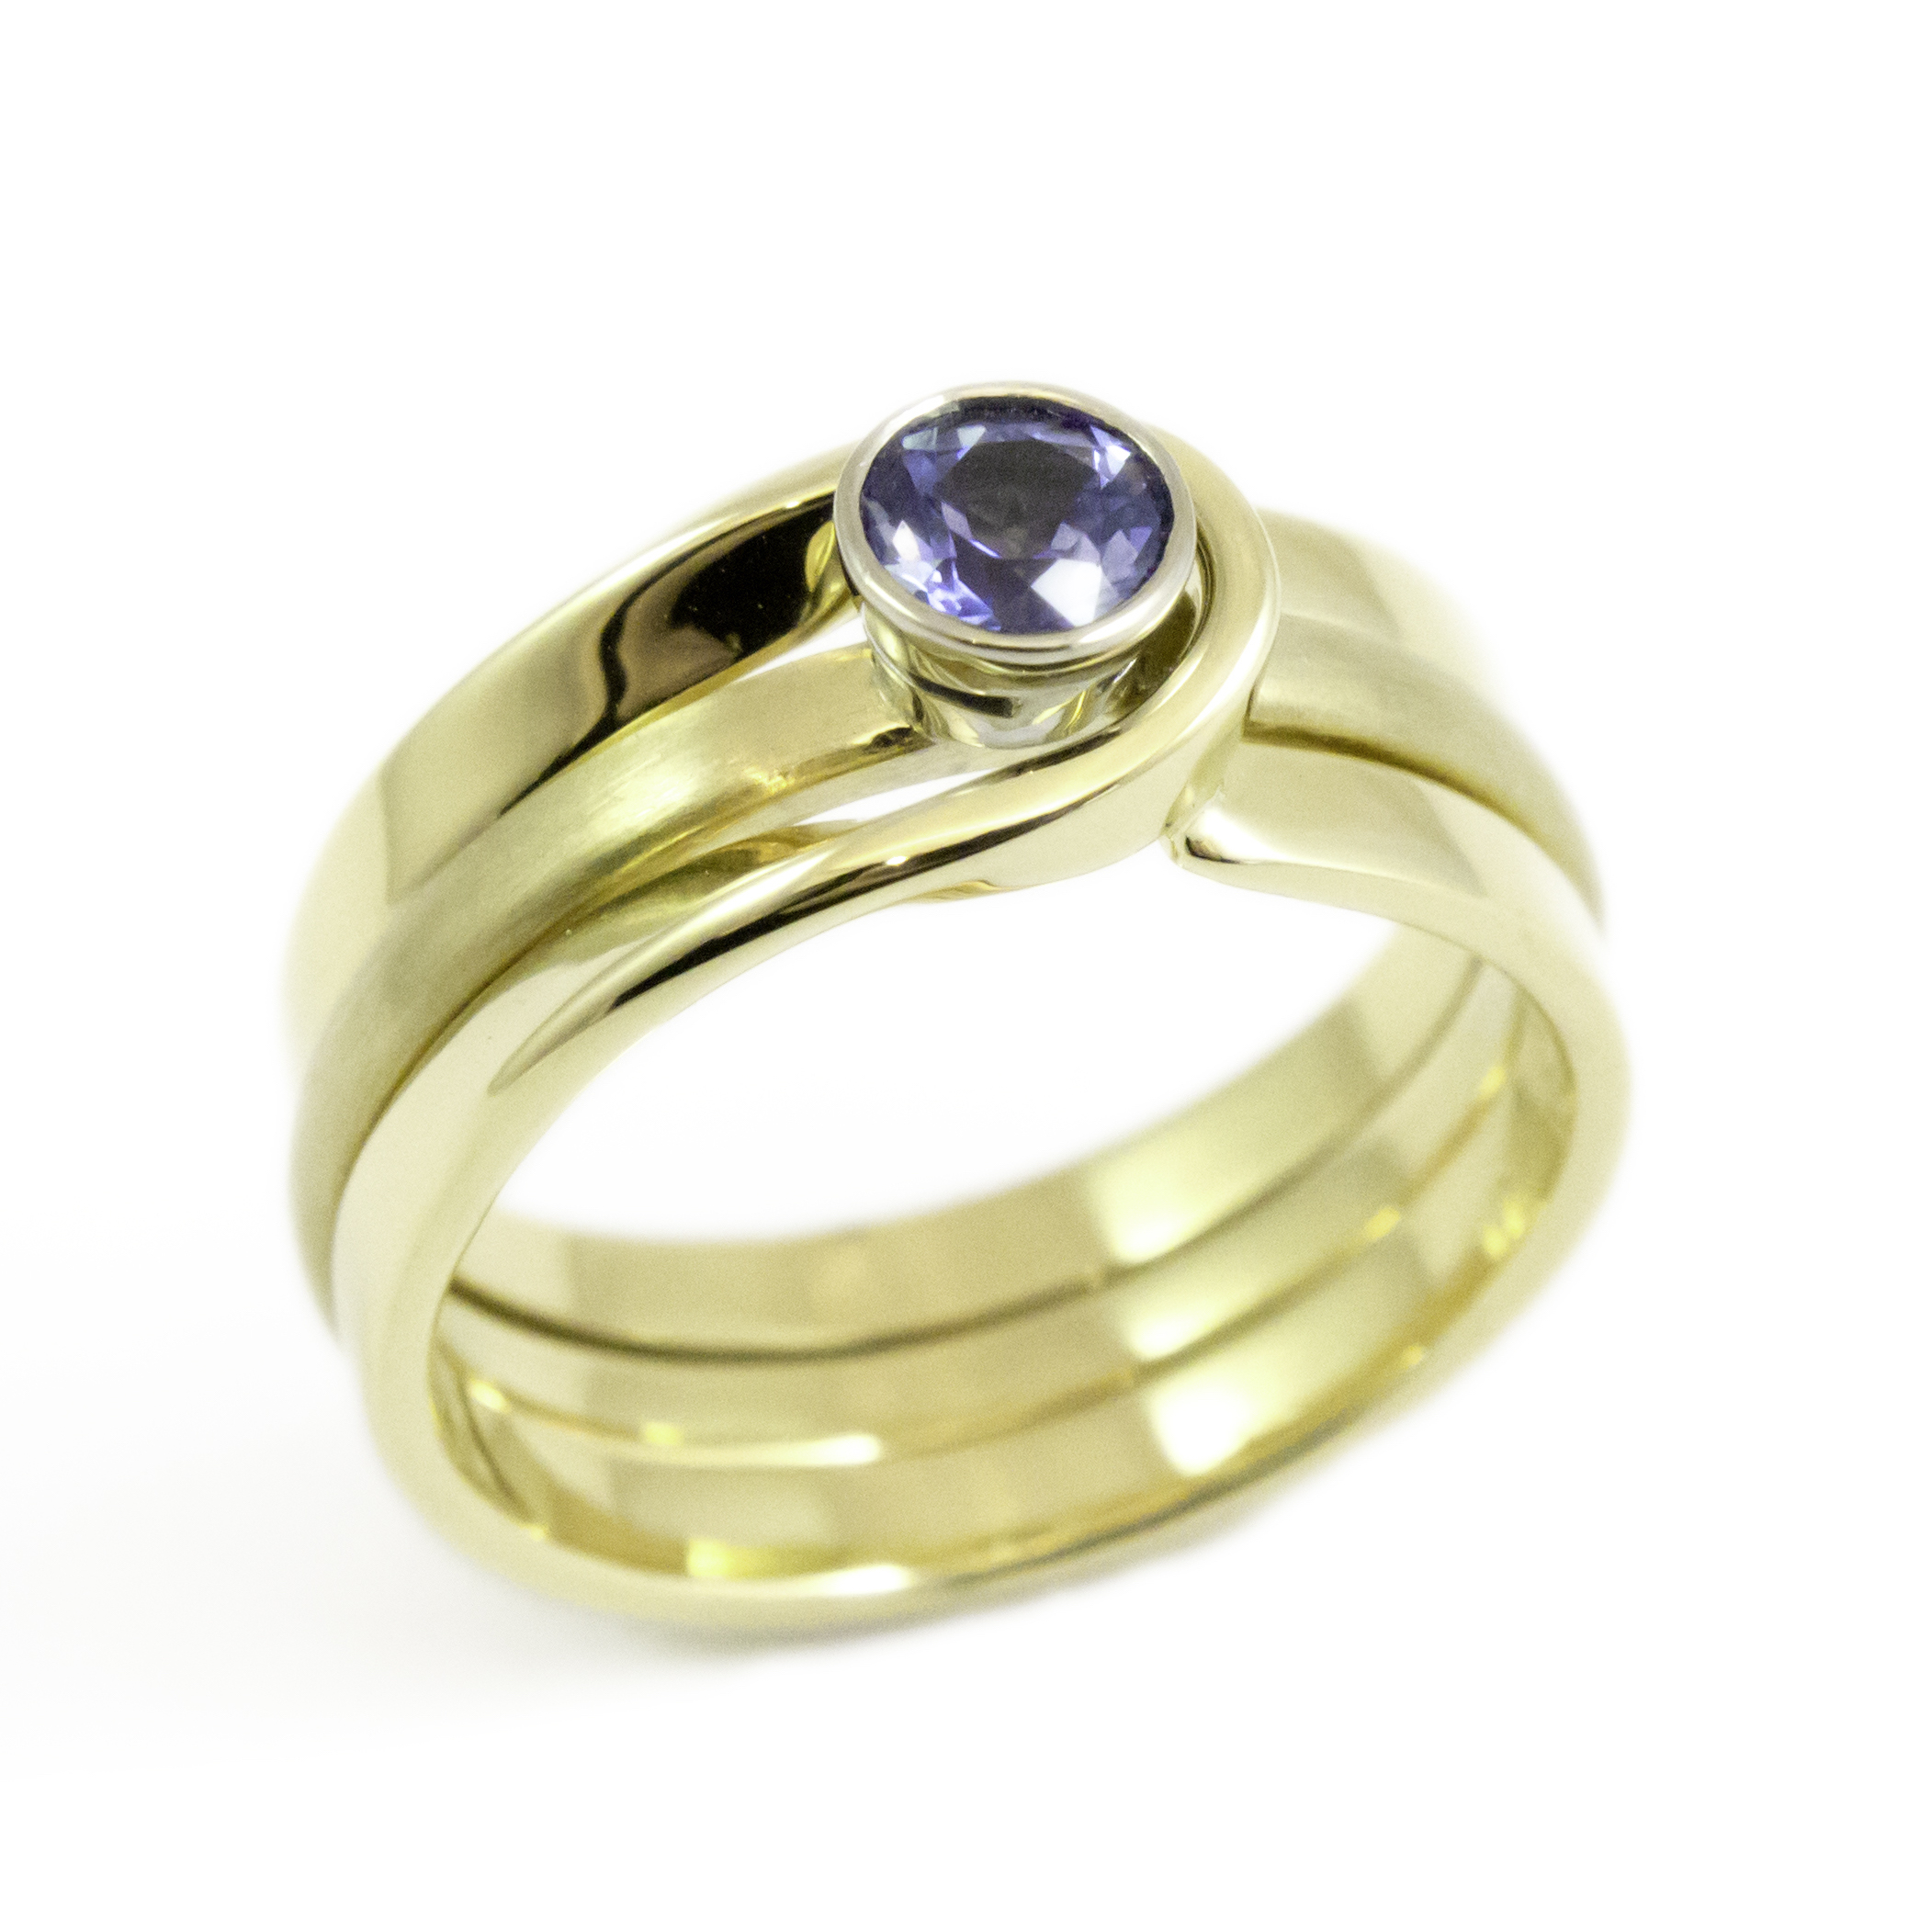 yellow gold and sapphire interlocking engagement and wedding ring - Interlocking Wedding Rings